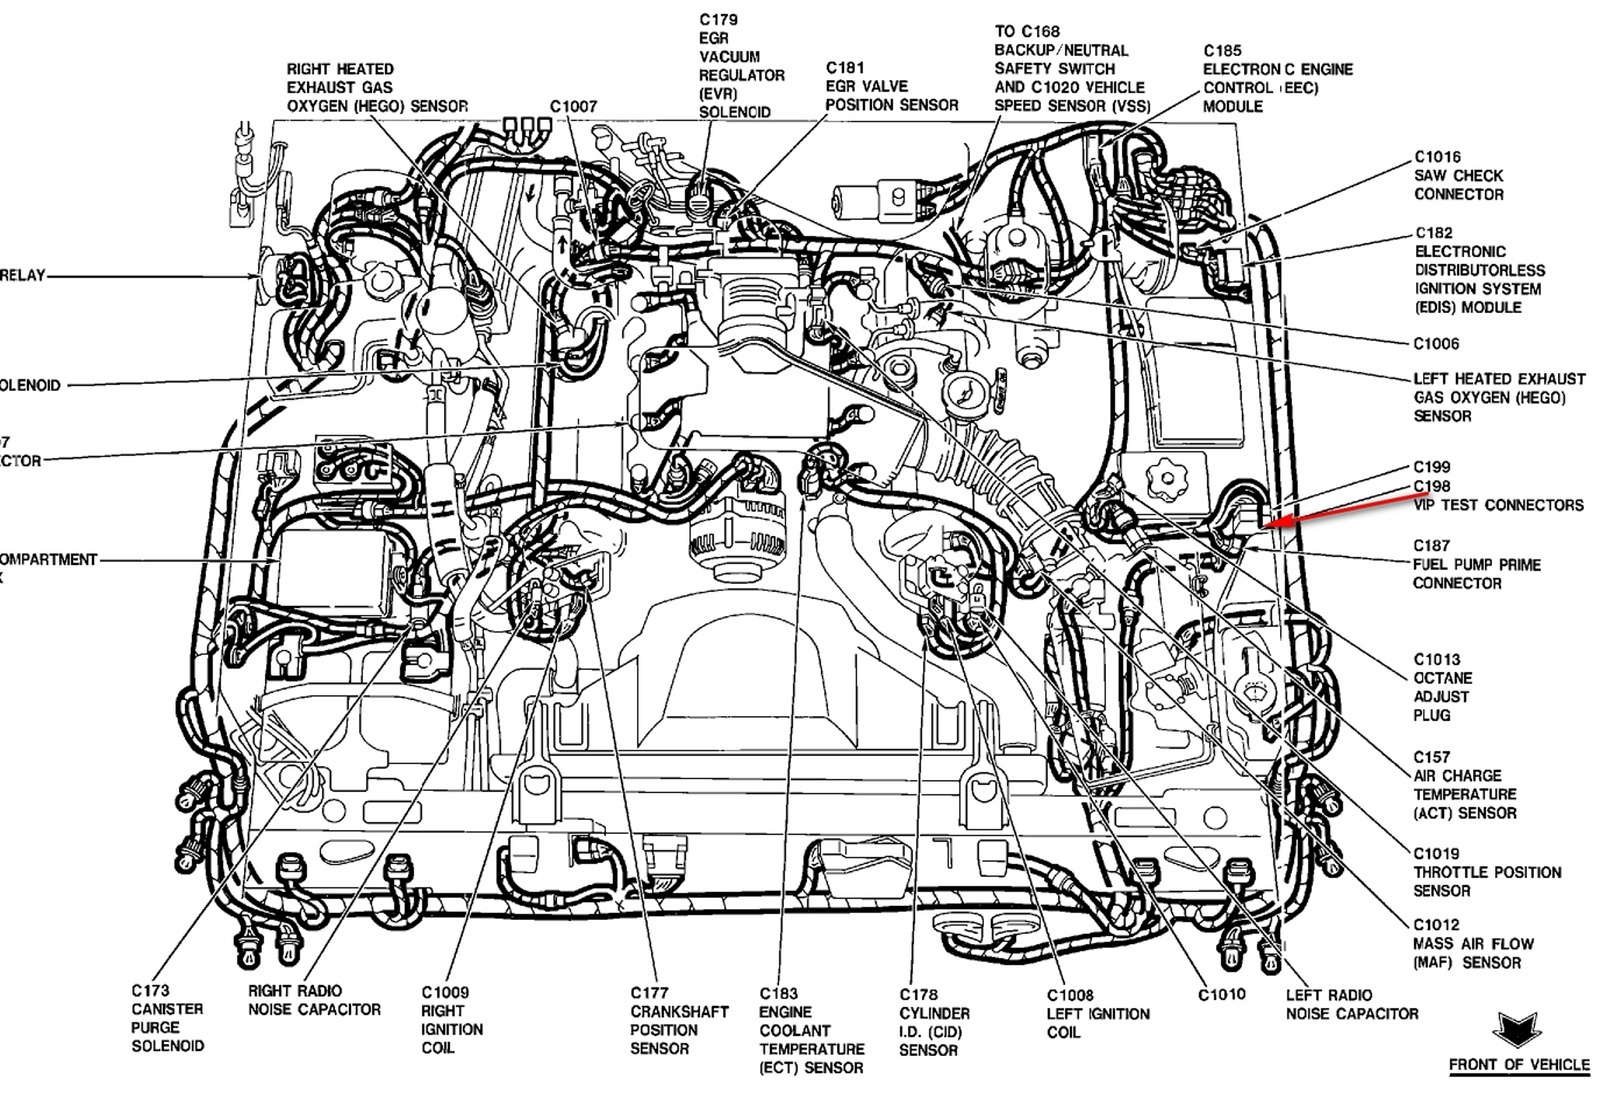 Fiat Punto Fuse Diagram 240sx Fuel Pump likewise Injection Pump My 97 Leaking Oil Like Sob 268261 moreover 68 Camaro Console Diagram in addition Discussion T16270 ds545905 furthermore Basic Sensors Diagnostics. on electric temp gauge wiring diagram